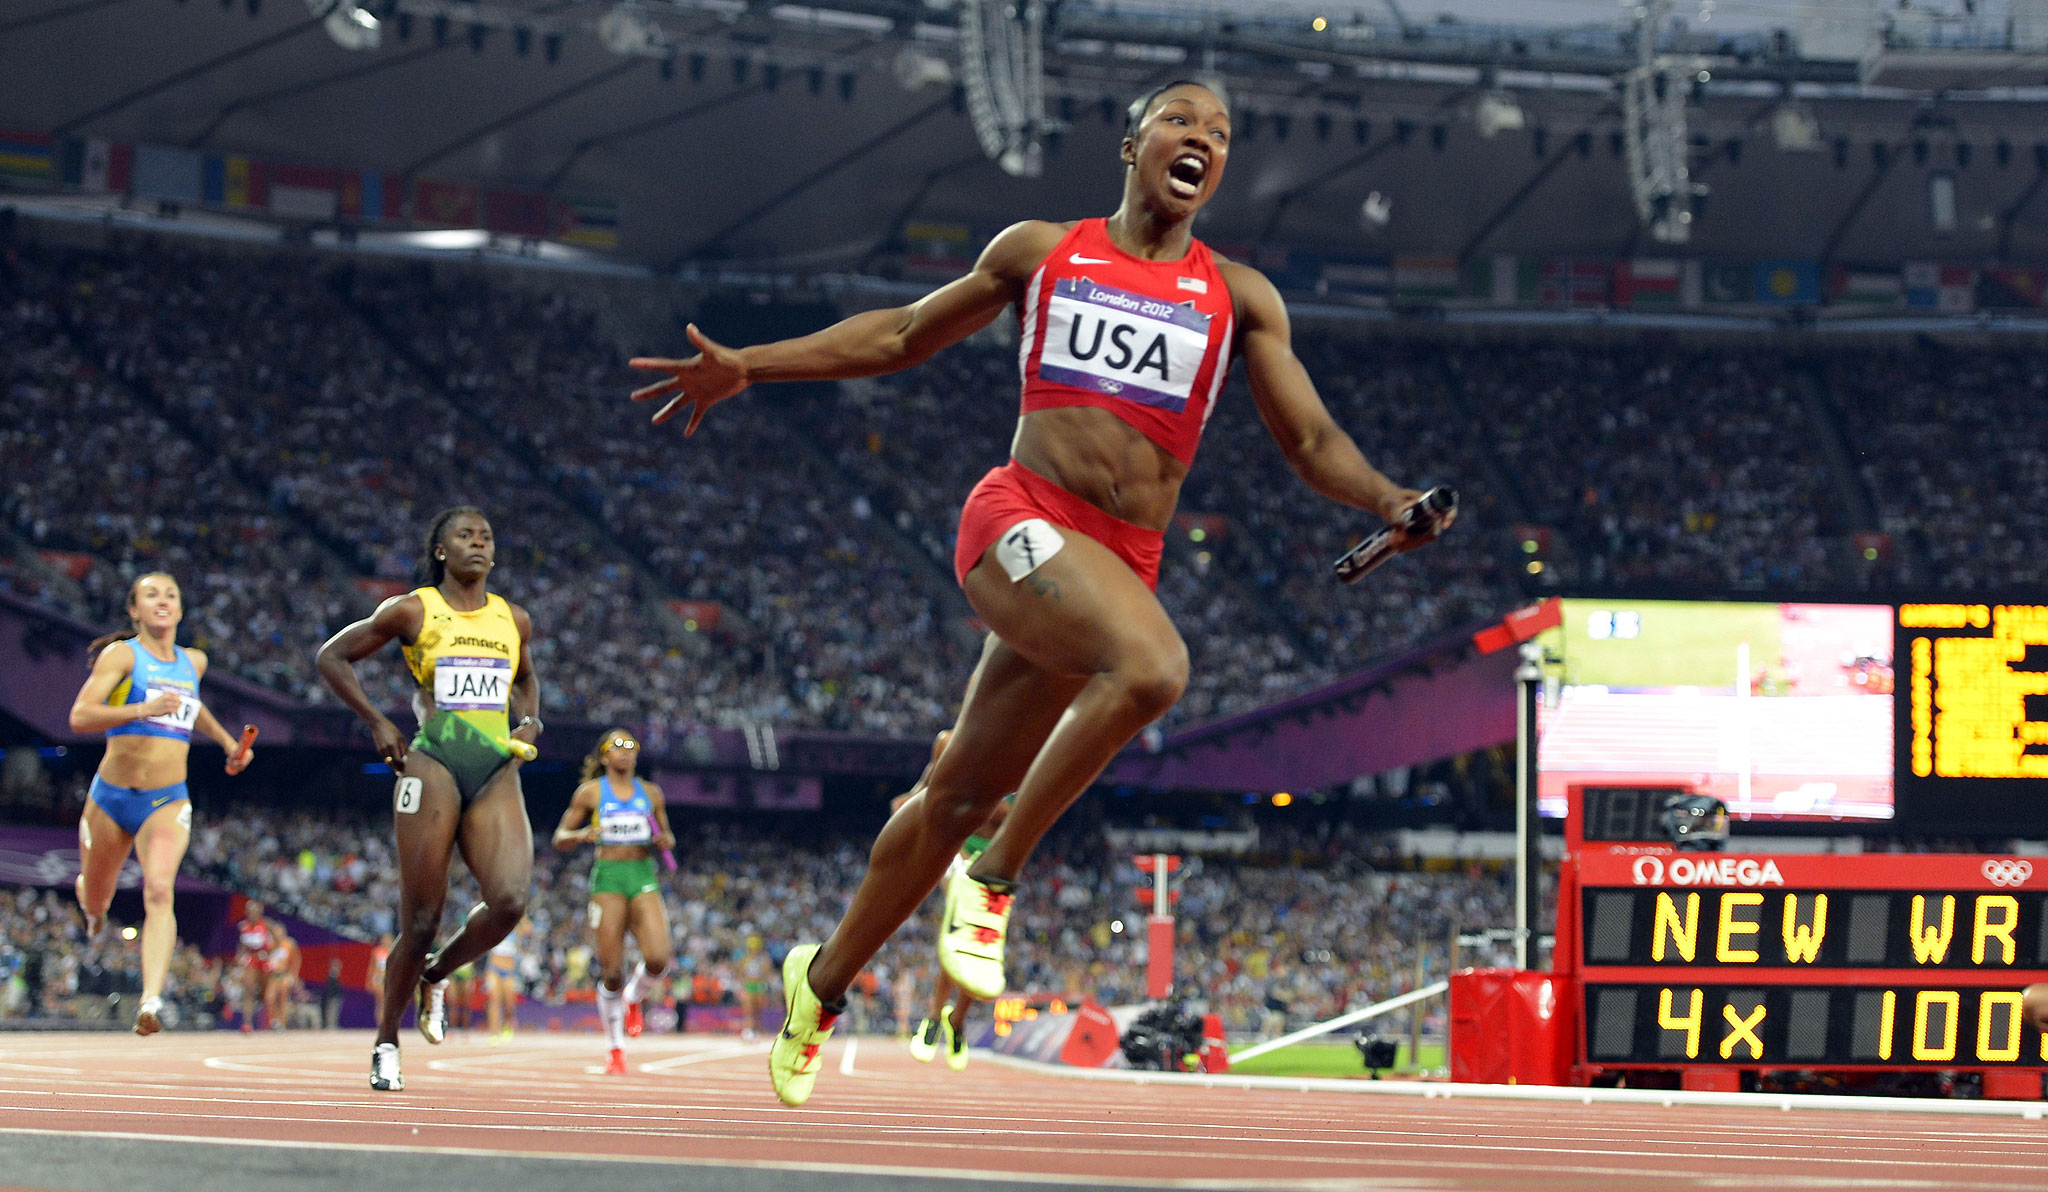 Carmelita Jeter celebrates after crossing the finish line in a world-record time in the 4x100 relay at the London Olympics. The U.S. team finished in 40.82, more than a half-second better than a record that had stood for 27 years.